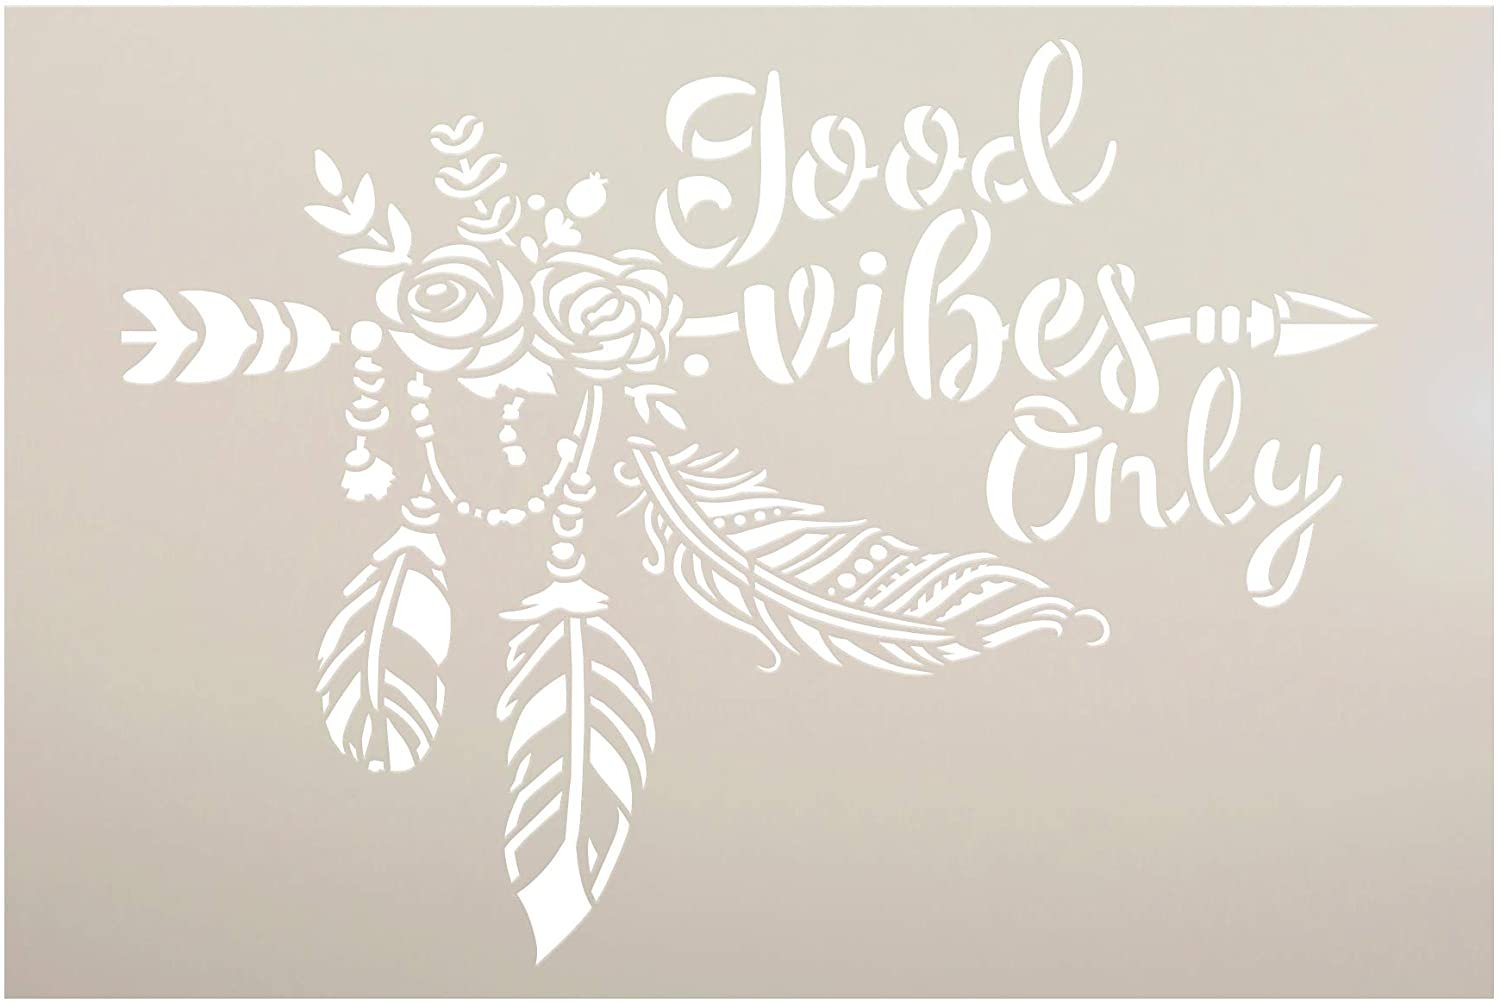 Good Vibes Only Stencil by StudioR12 | DIY Boho Arrow Rose Feather Home Decor Gift | Craft & Paint Wood Sign | Reusable Mylar Template | Select Size